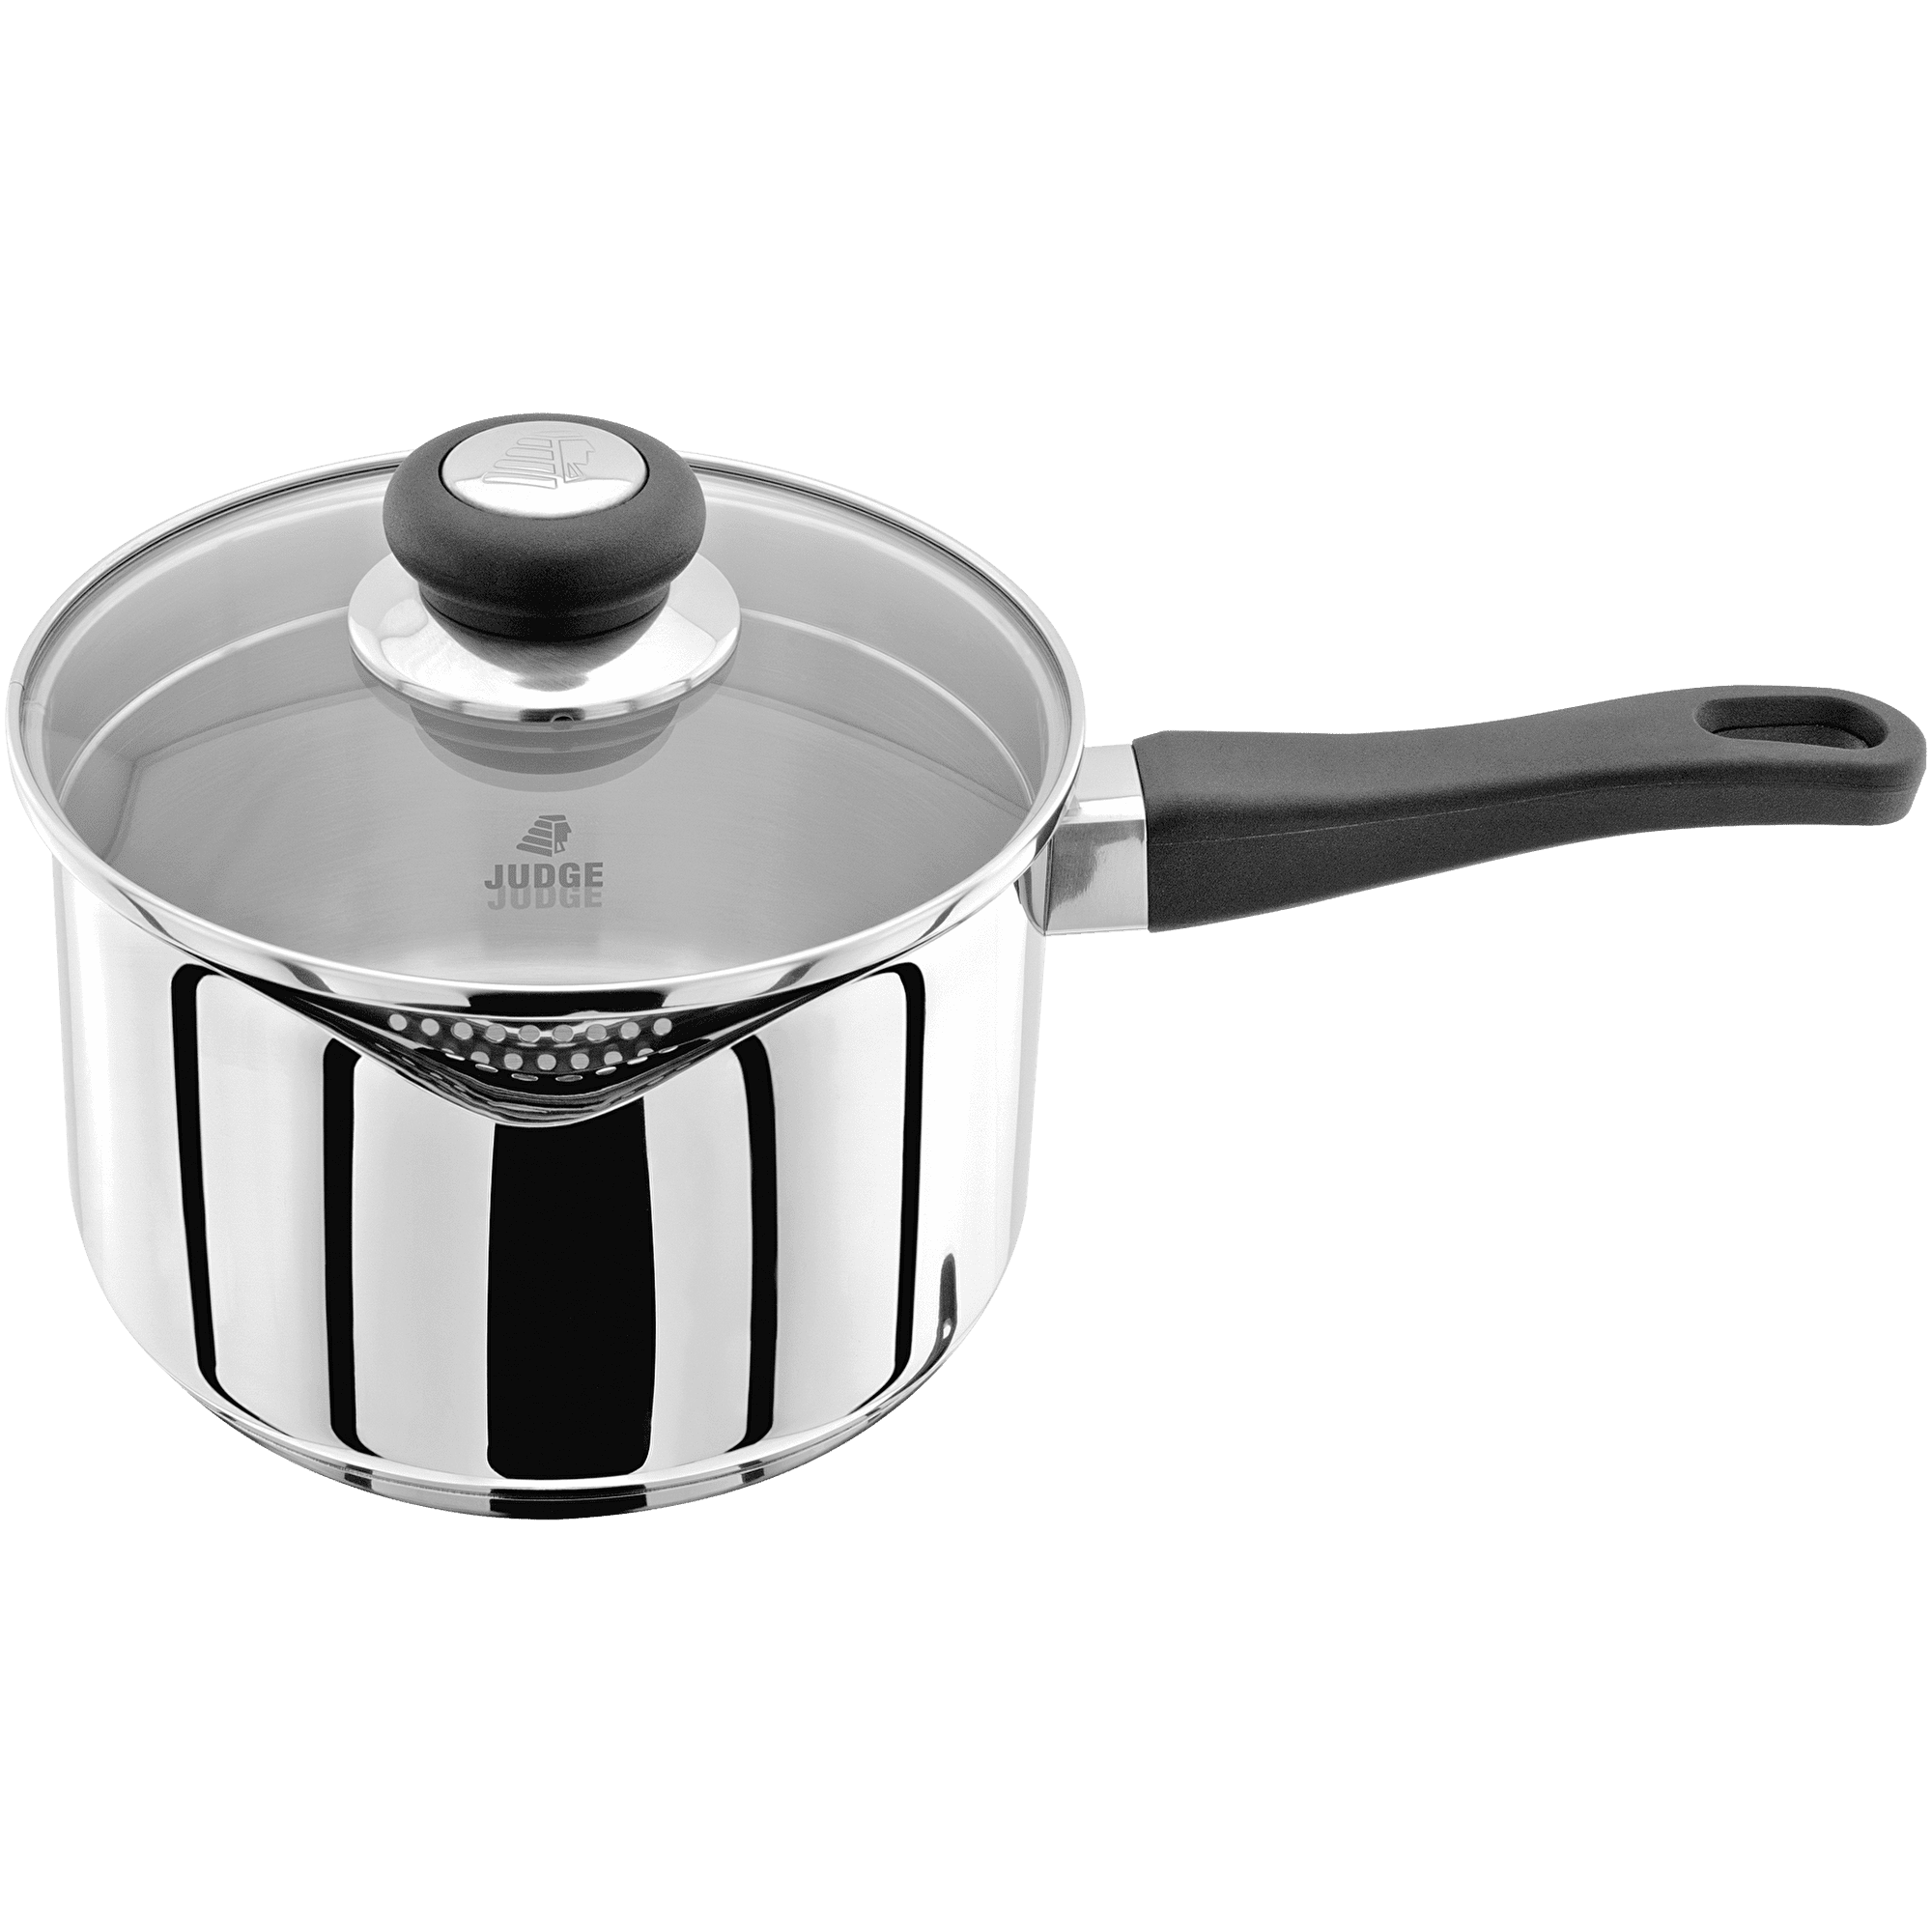 Judge Vista Draining Saucepan 18cm/2.1L